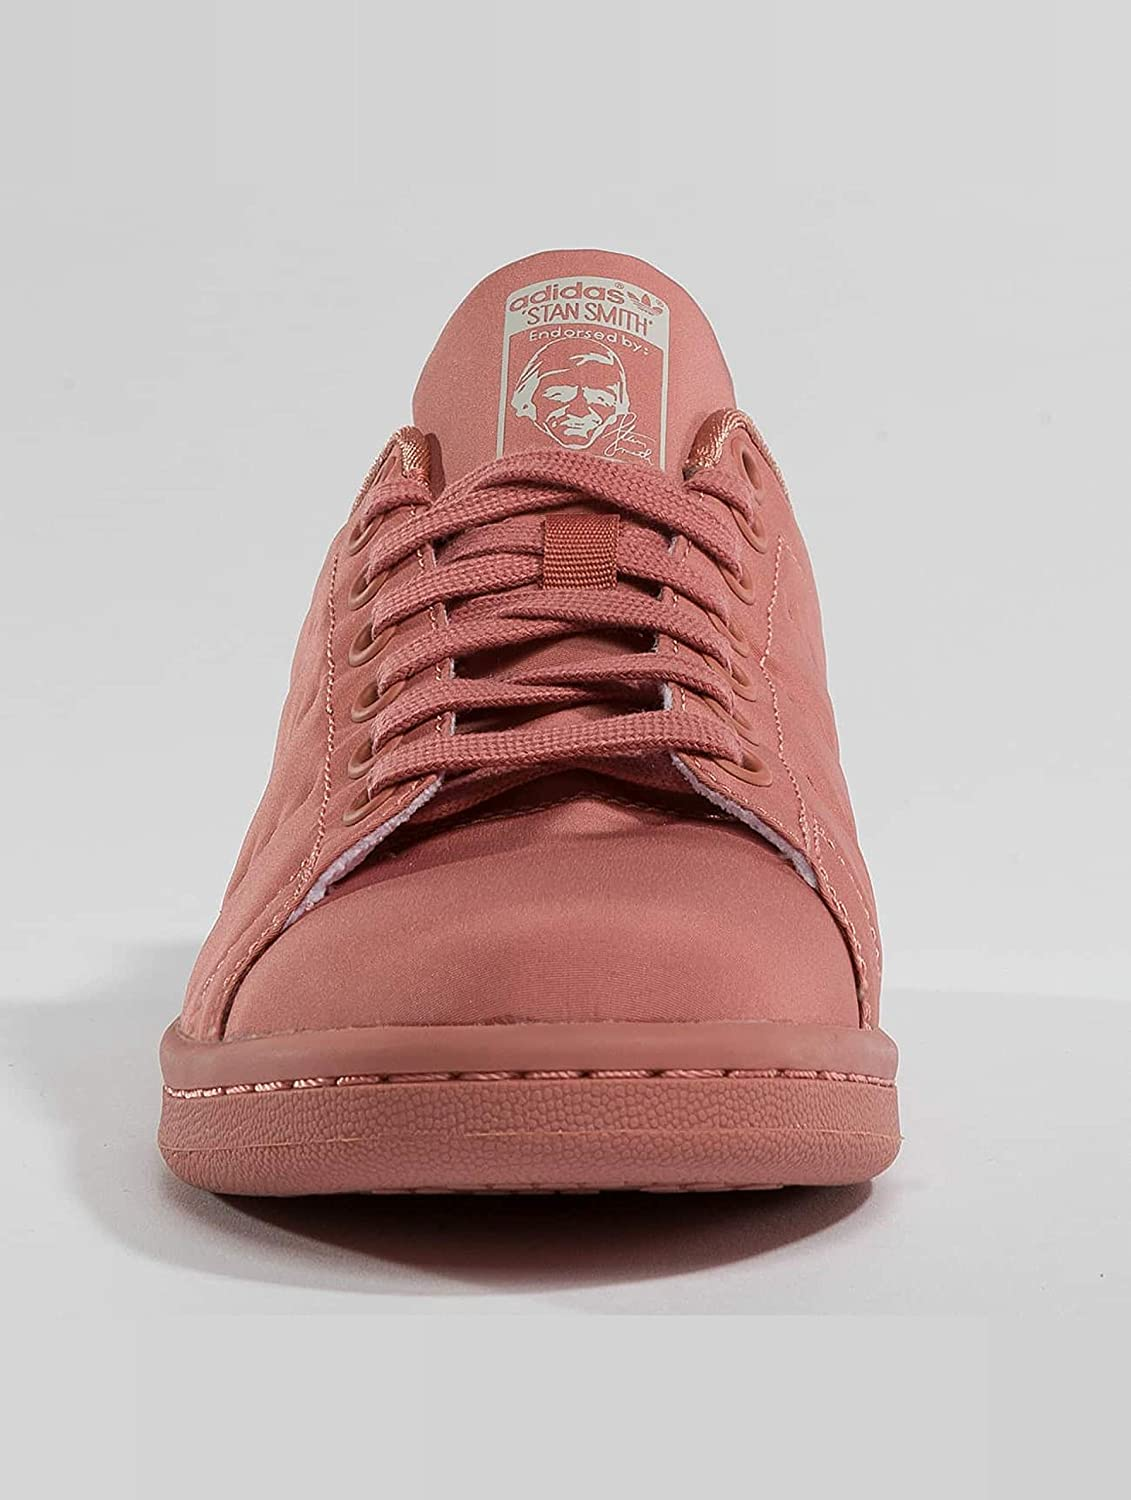 adidas Stan Smith W, Sneaker a Collo Basso Donna Rosa Raw Pink Raw Pink Raw Pink QkVc32